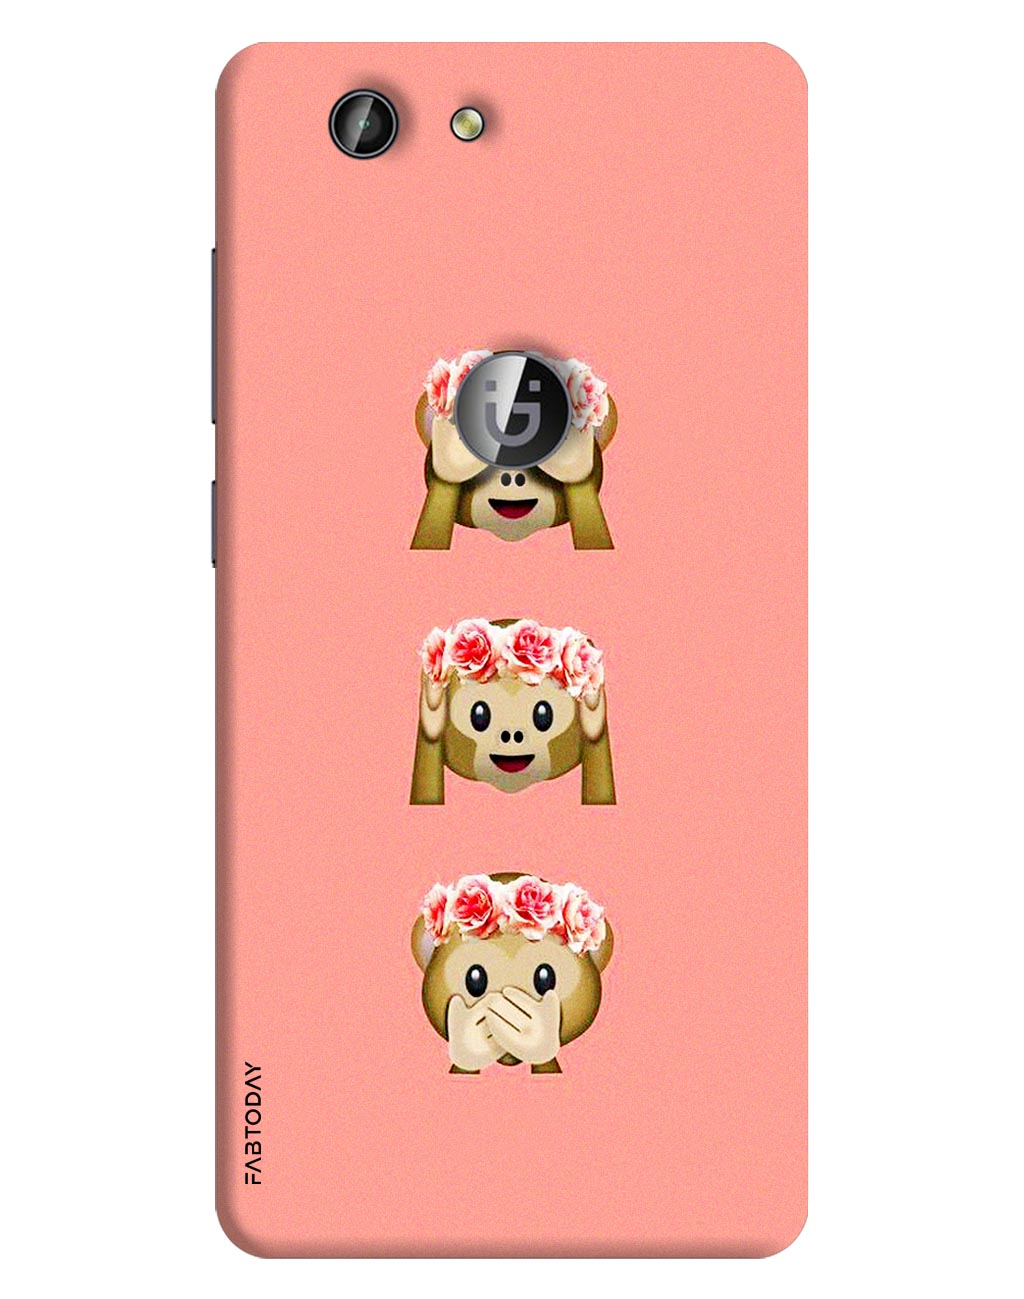 Monkey Back Cover for Gionee F103 Pro